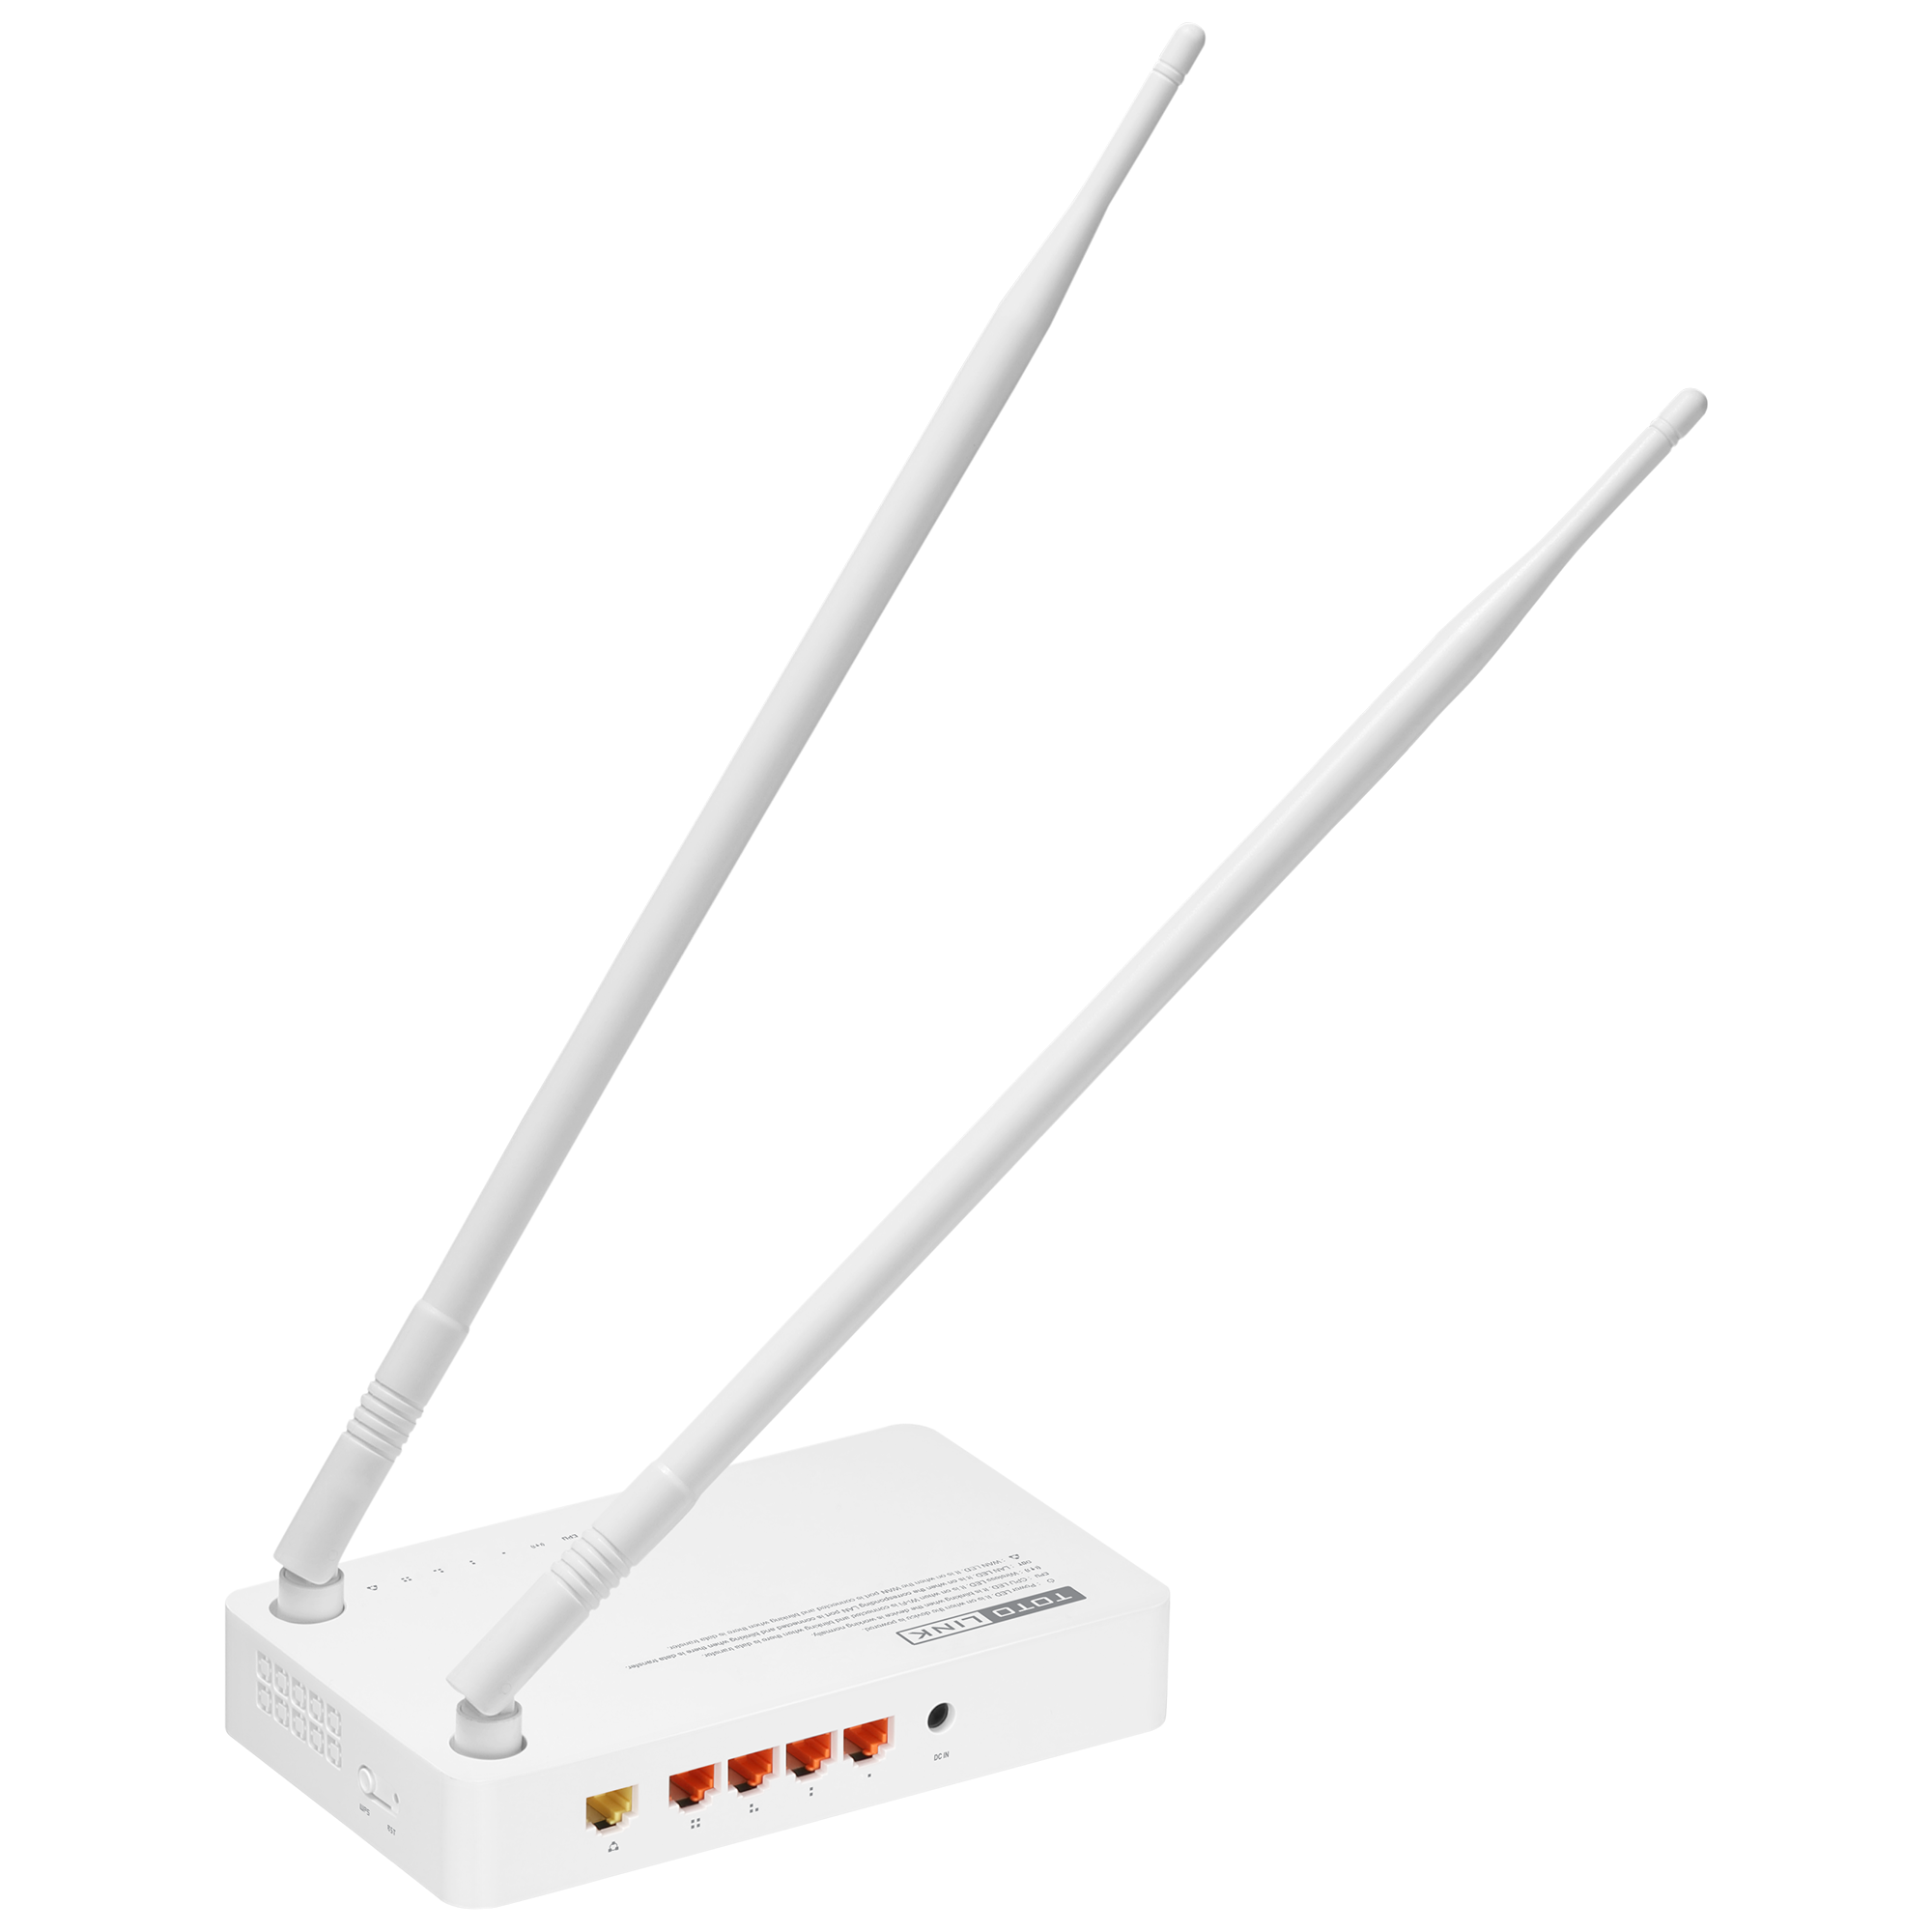 TOTOLINK N300RH 300Mbps Long Range Wireless N AP/Router, 2 antenna